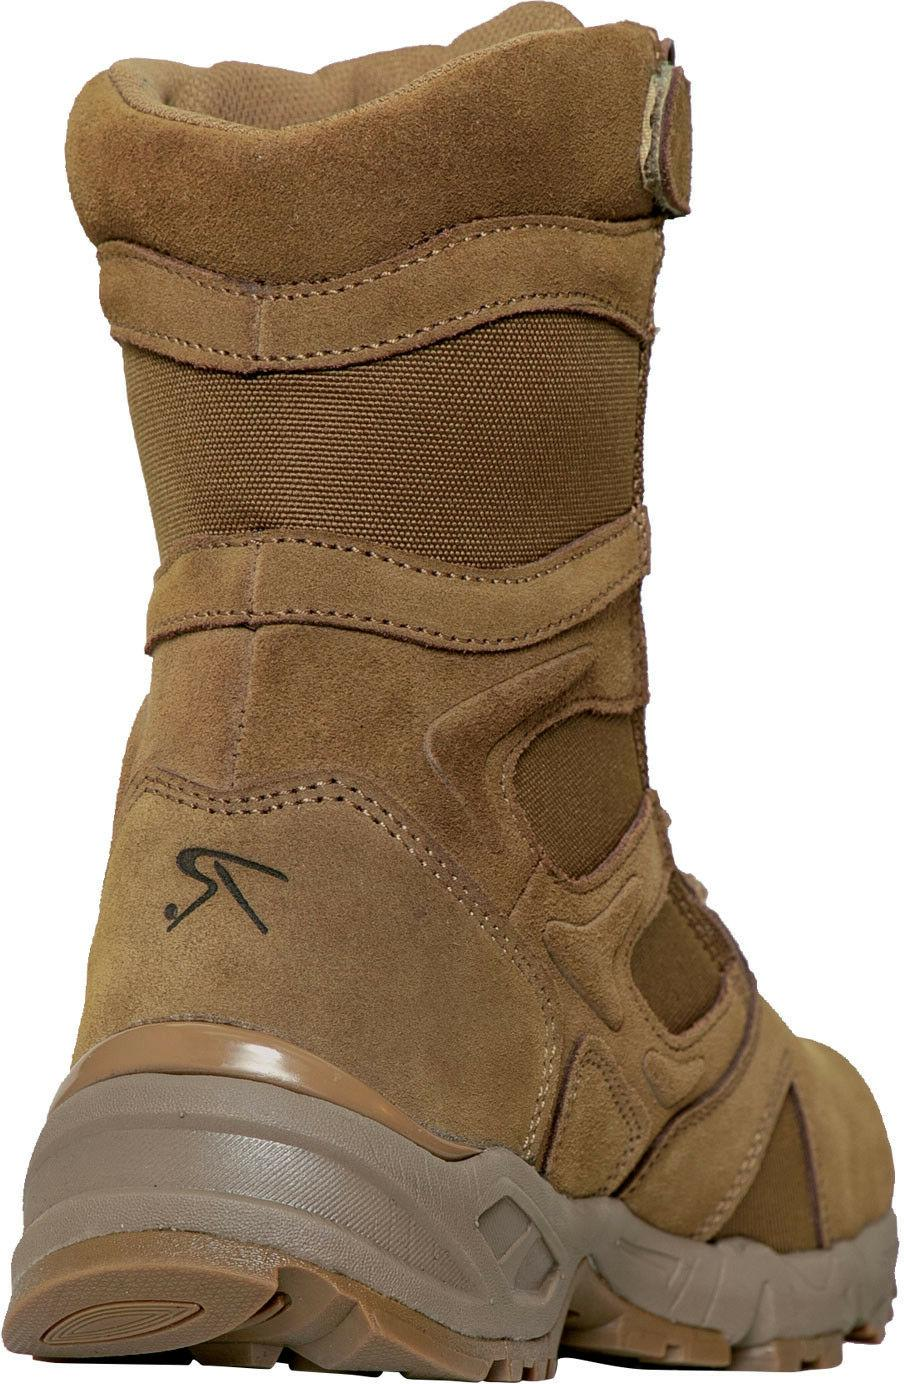 Coyote 670-1 Forced Side Zipper Tactical Deployment Boots